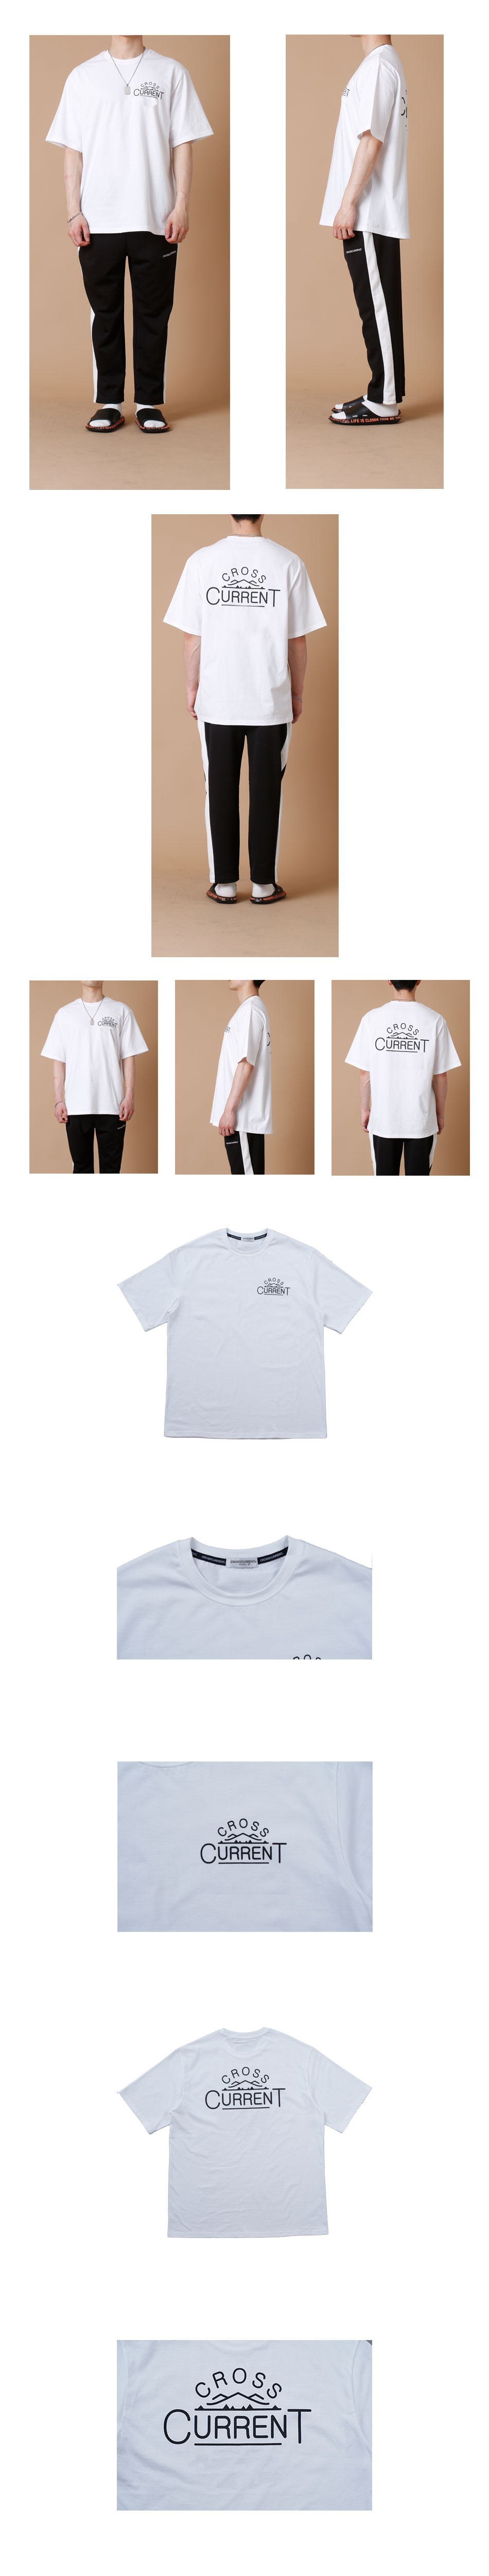 #crct00001-CCT-Mountain-Short-Sleeve-화이트950.jpg